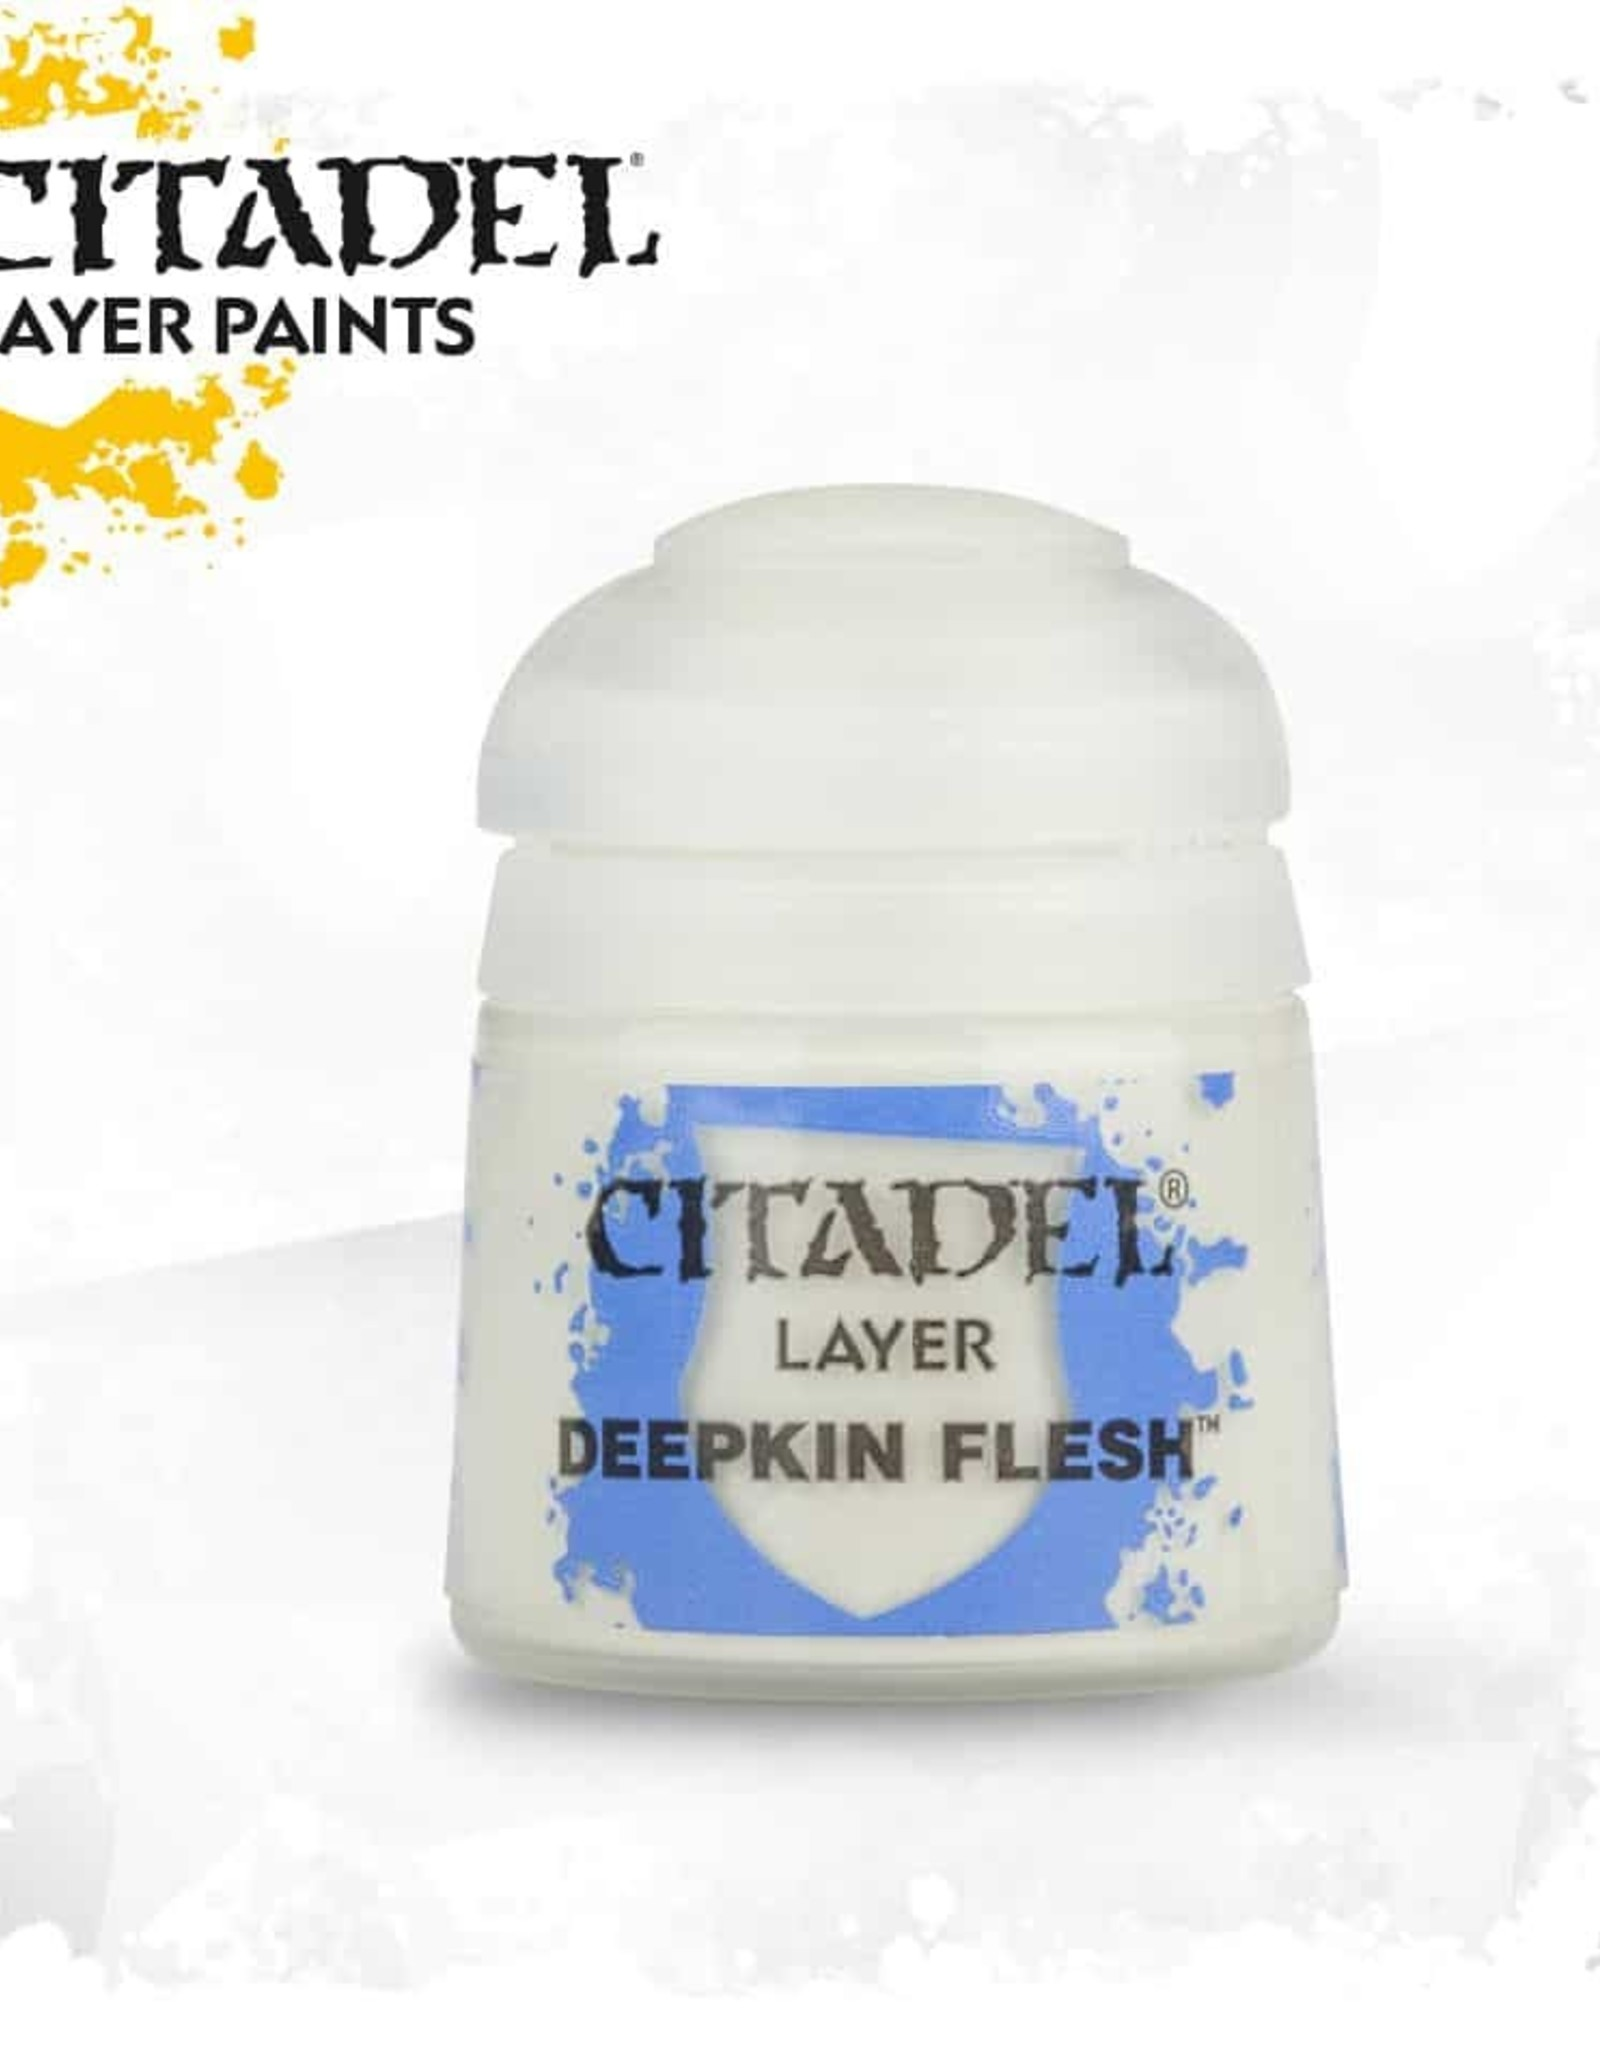 Games Workshop Citadel Paint: Layer - Deepkin Flesh